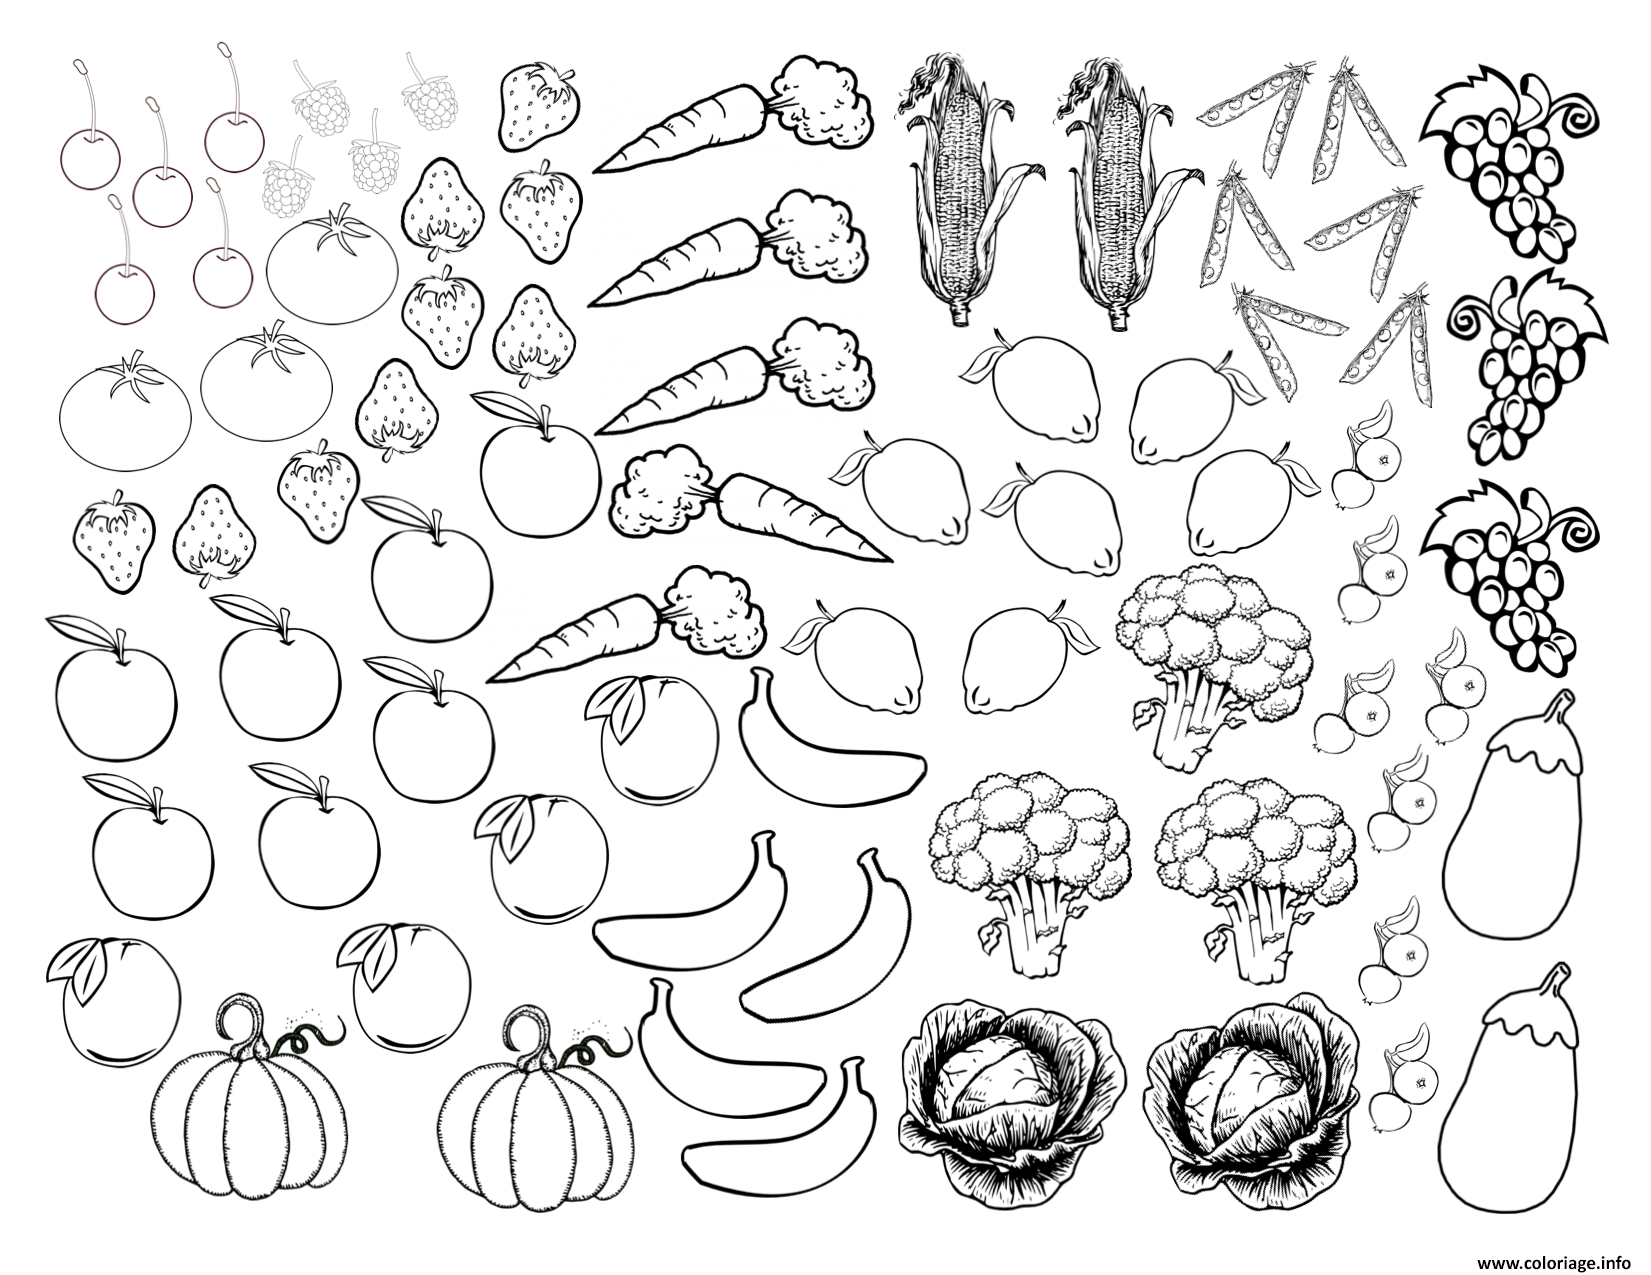 Coloriage Les Fruits.Coloriage Fruits Et Legumes 2 Jecolorie Com